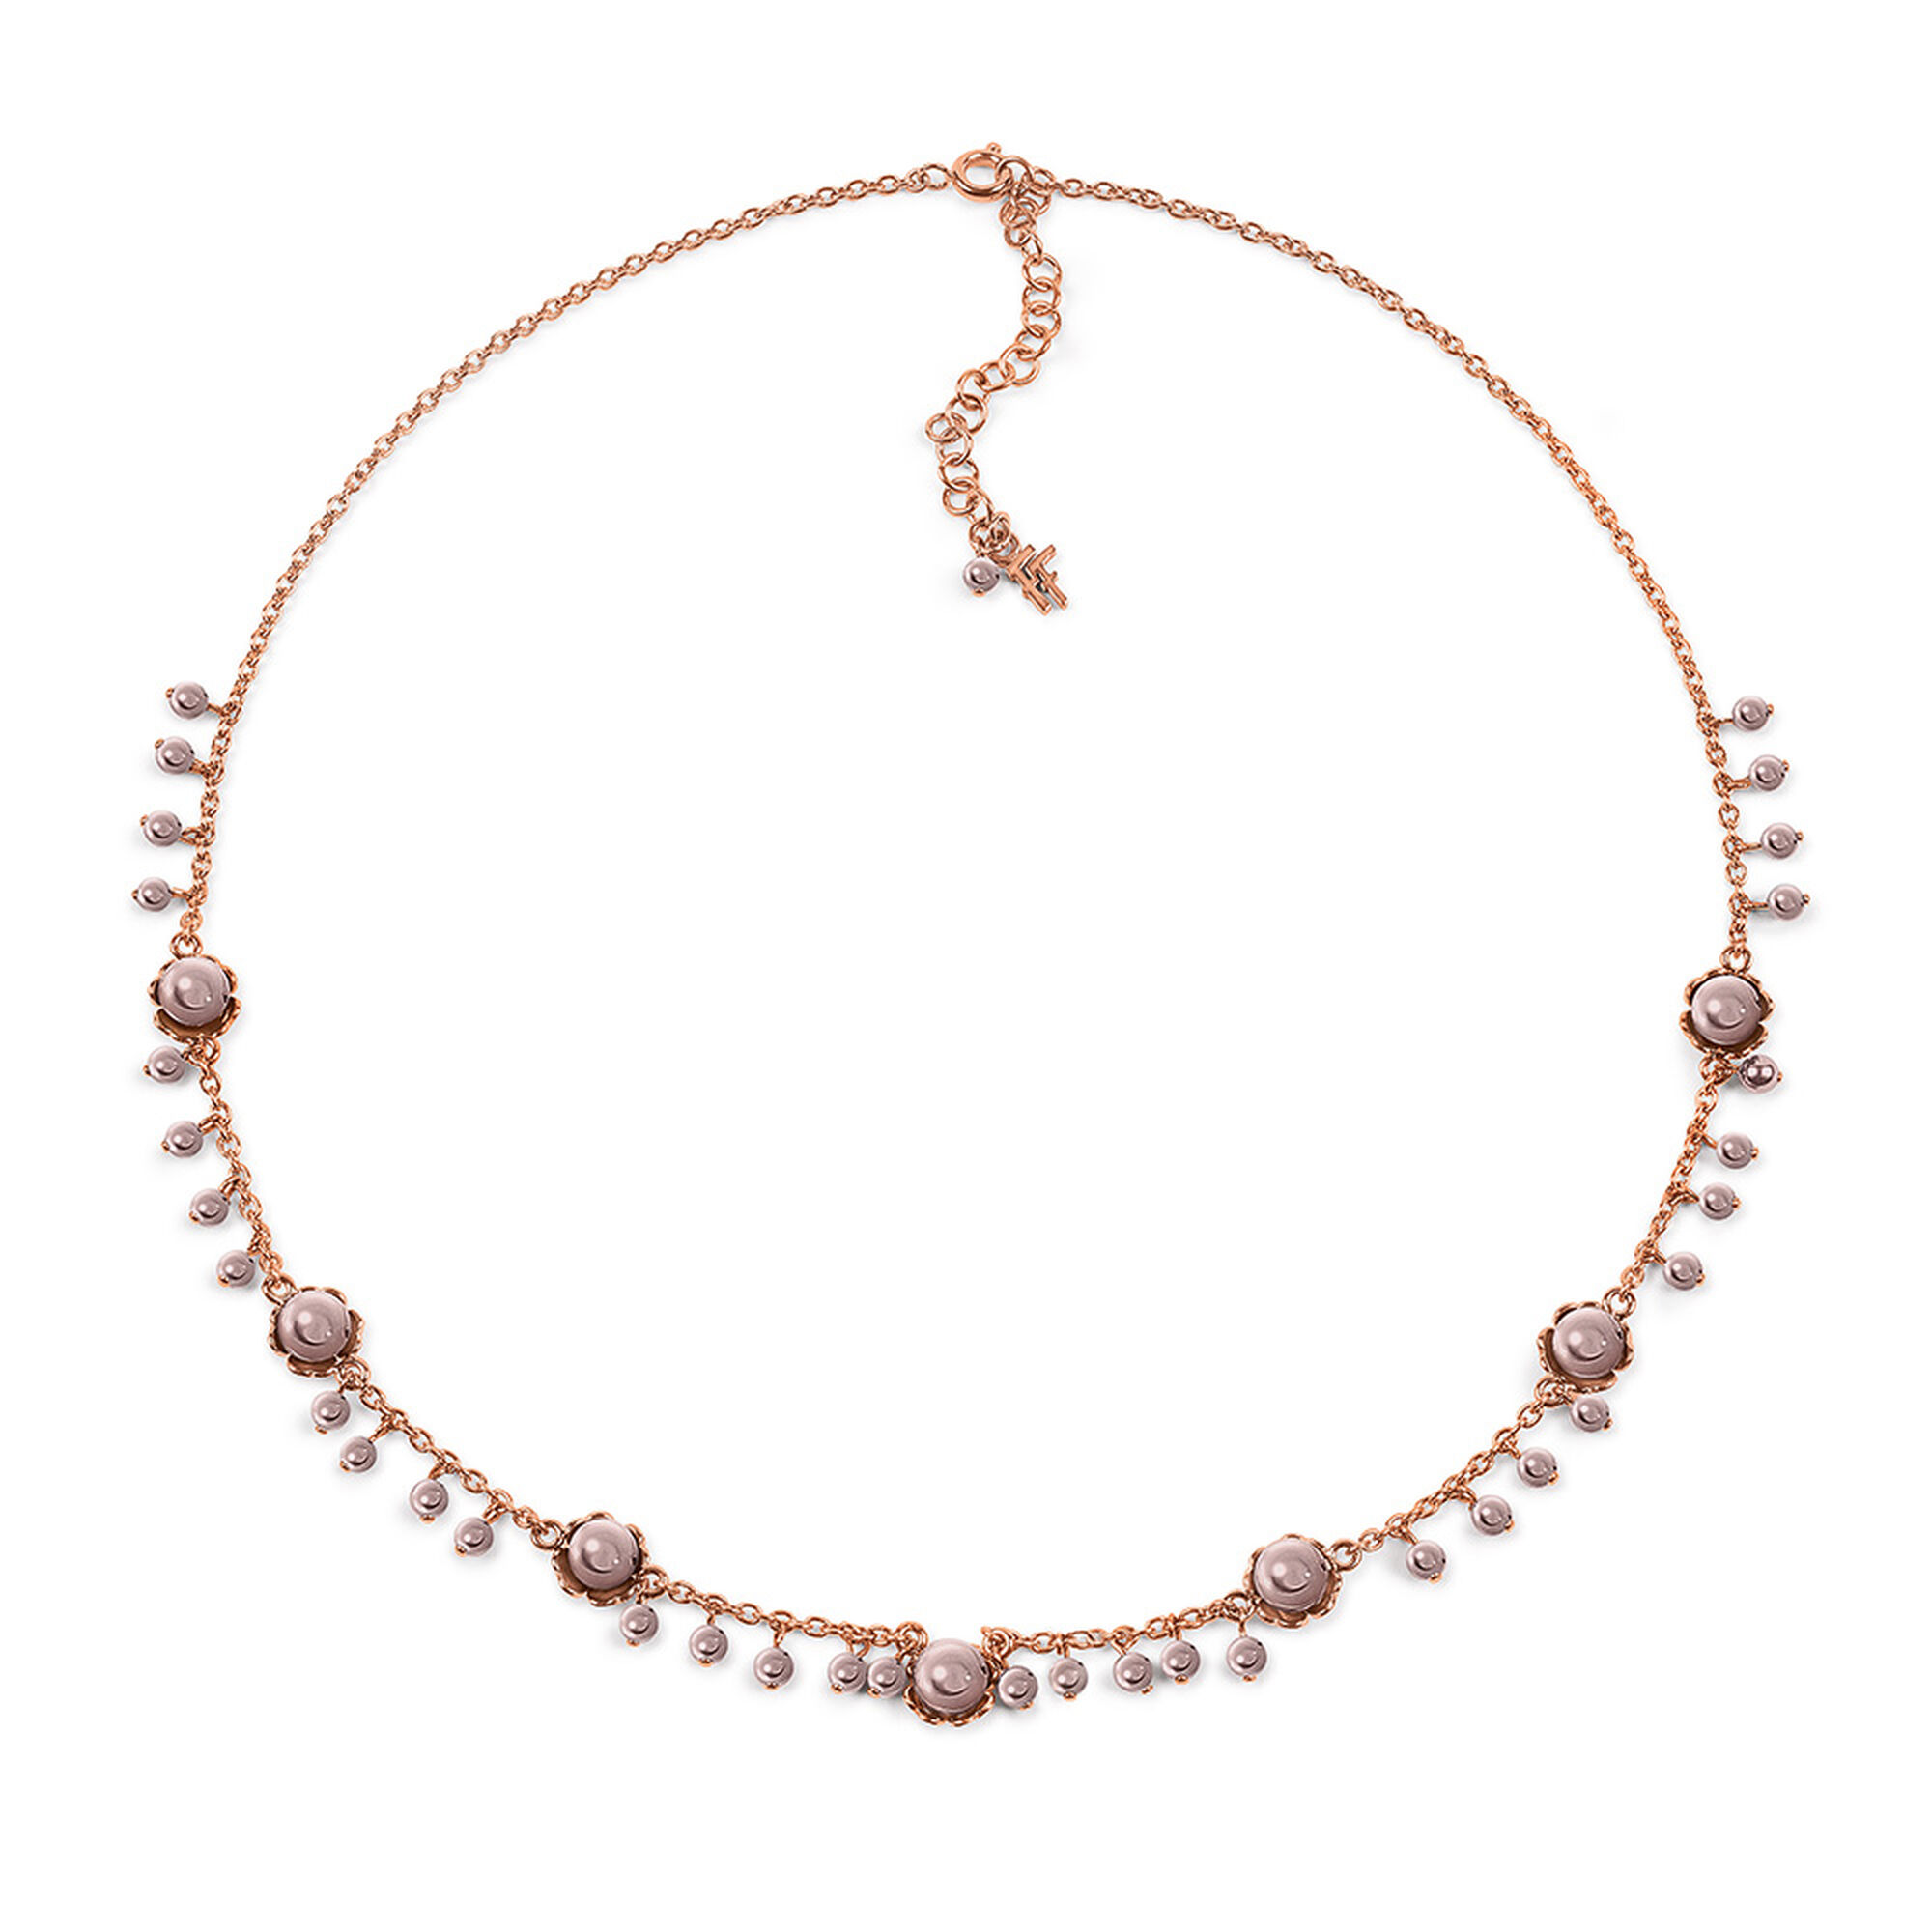 Grace Flair Rose Gold Plated Dirty Pink Pearls Short Necklace, , Hires